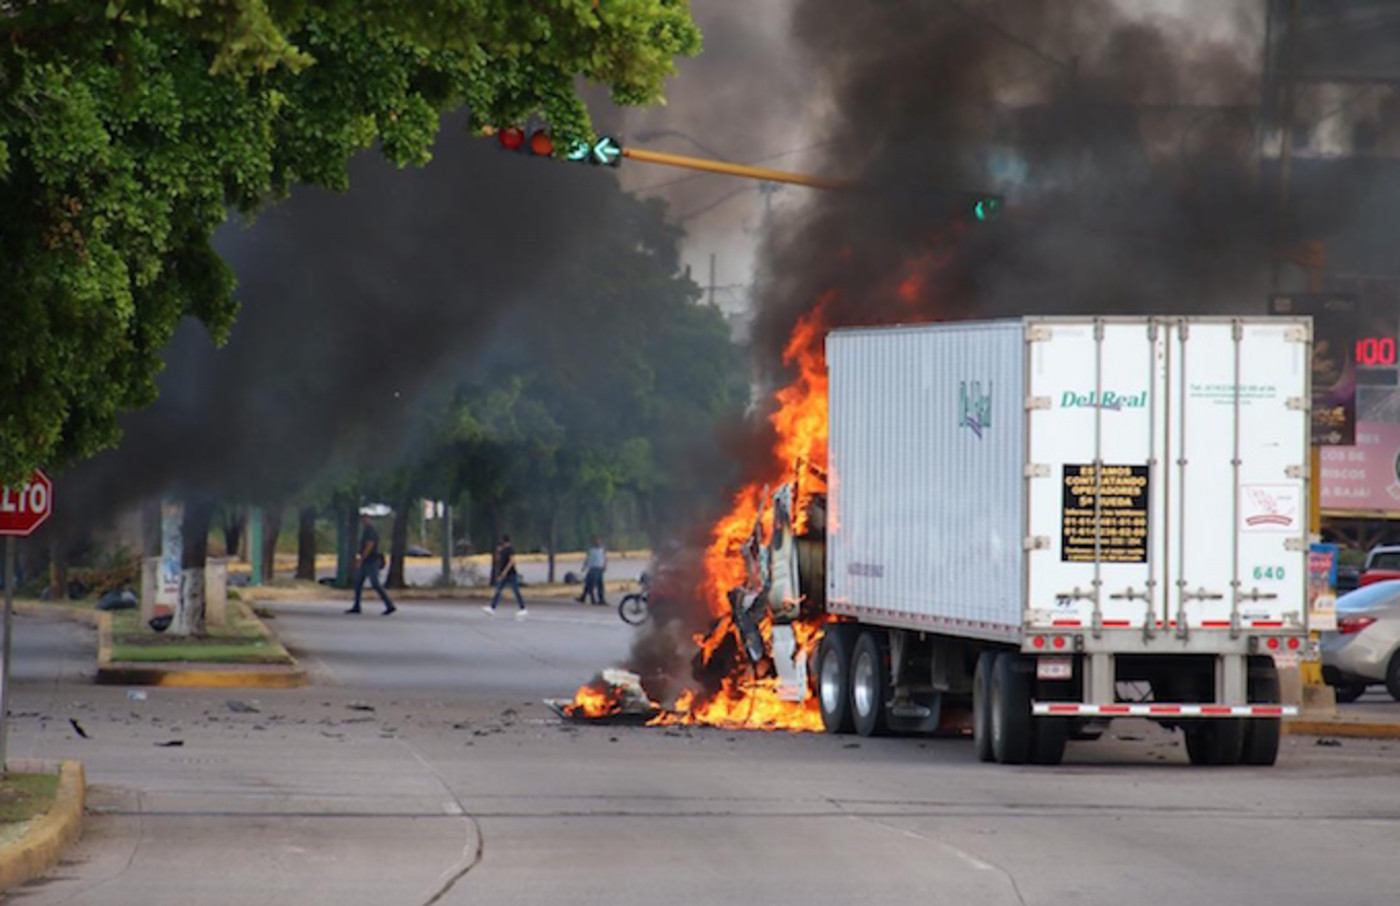 A truck burns in a street of Culiacan, state of Sinaloa, Mexico.